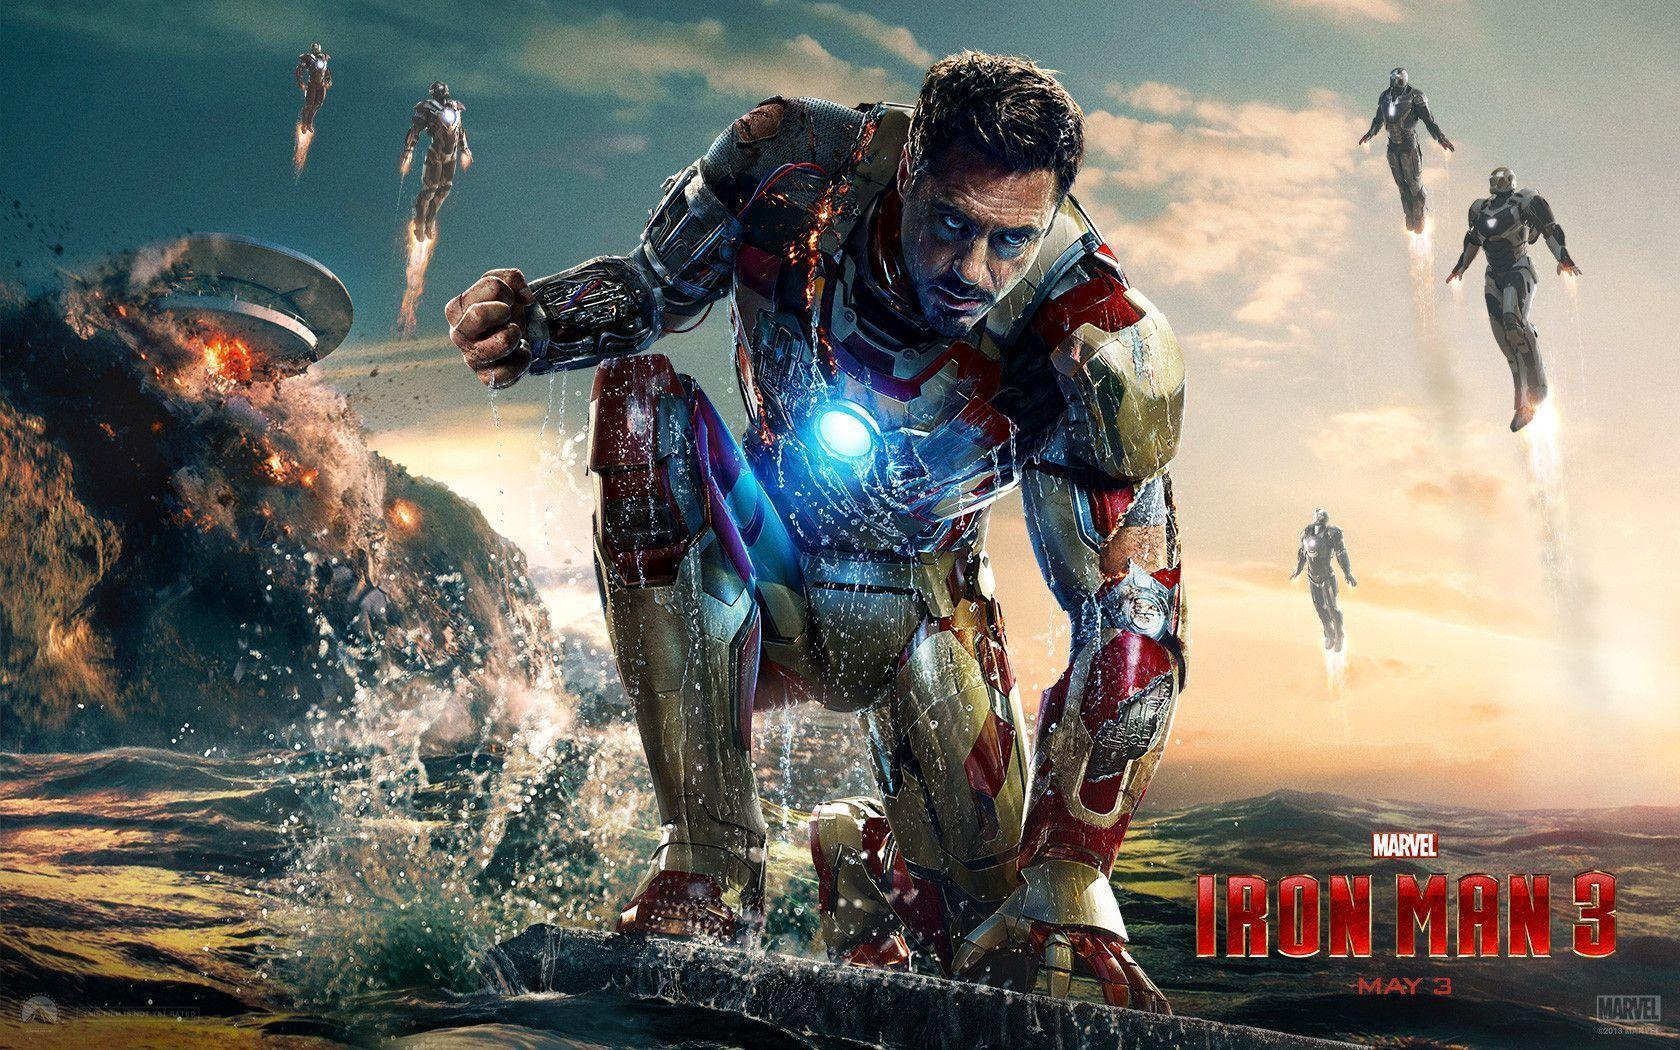 Hd Wallpapers Iron Man 3 Wallpaper Cave